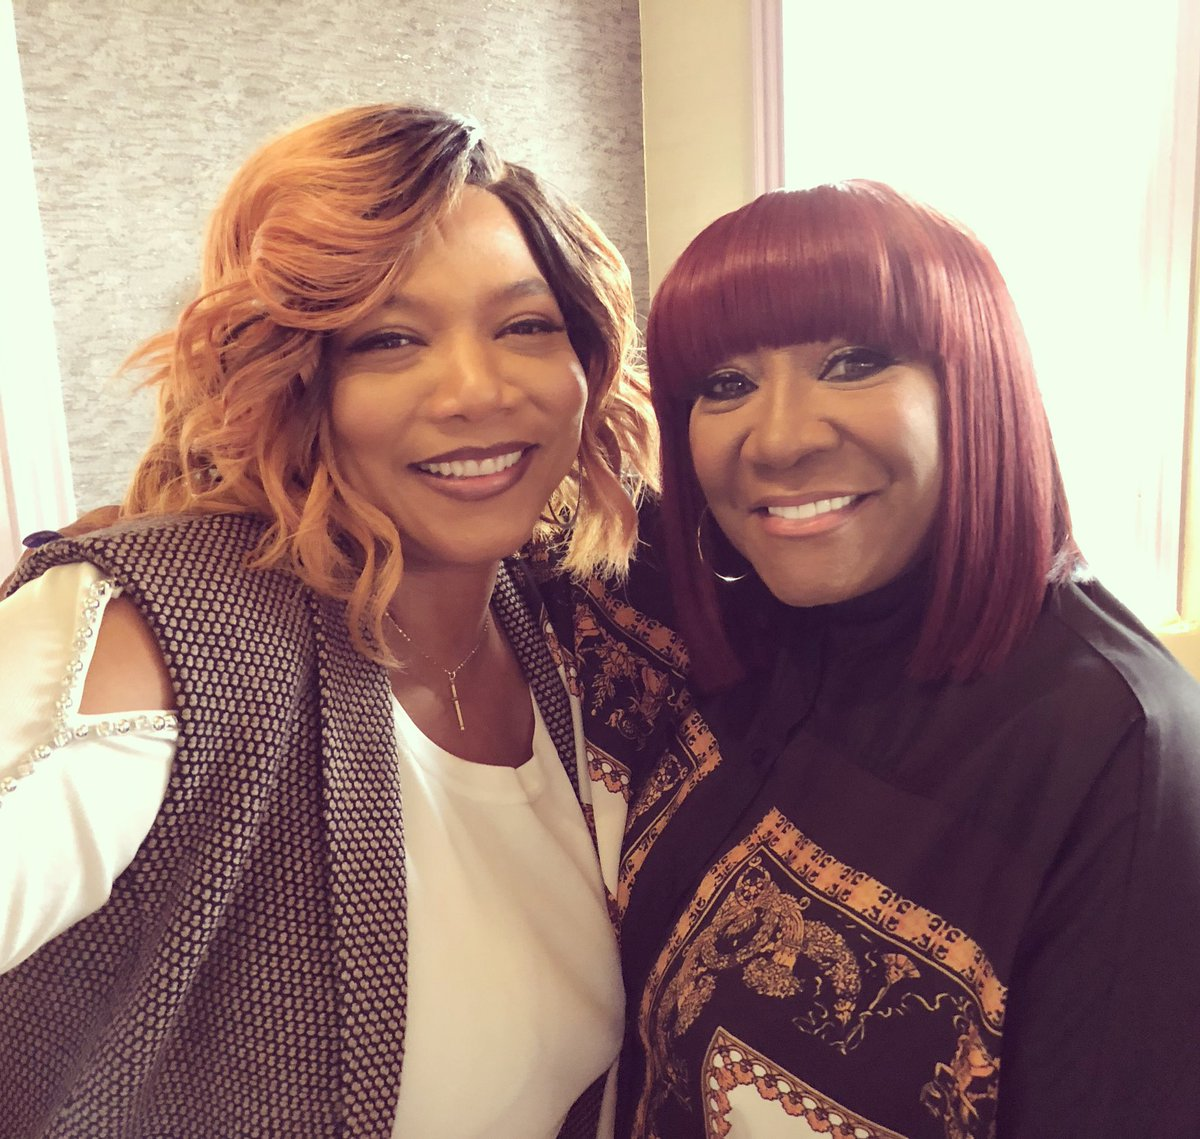 Happy to be back on the set of @STAR with the amazing @MsPattiPatti ???? #star https://t.co/FhbPAR58vP